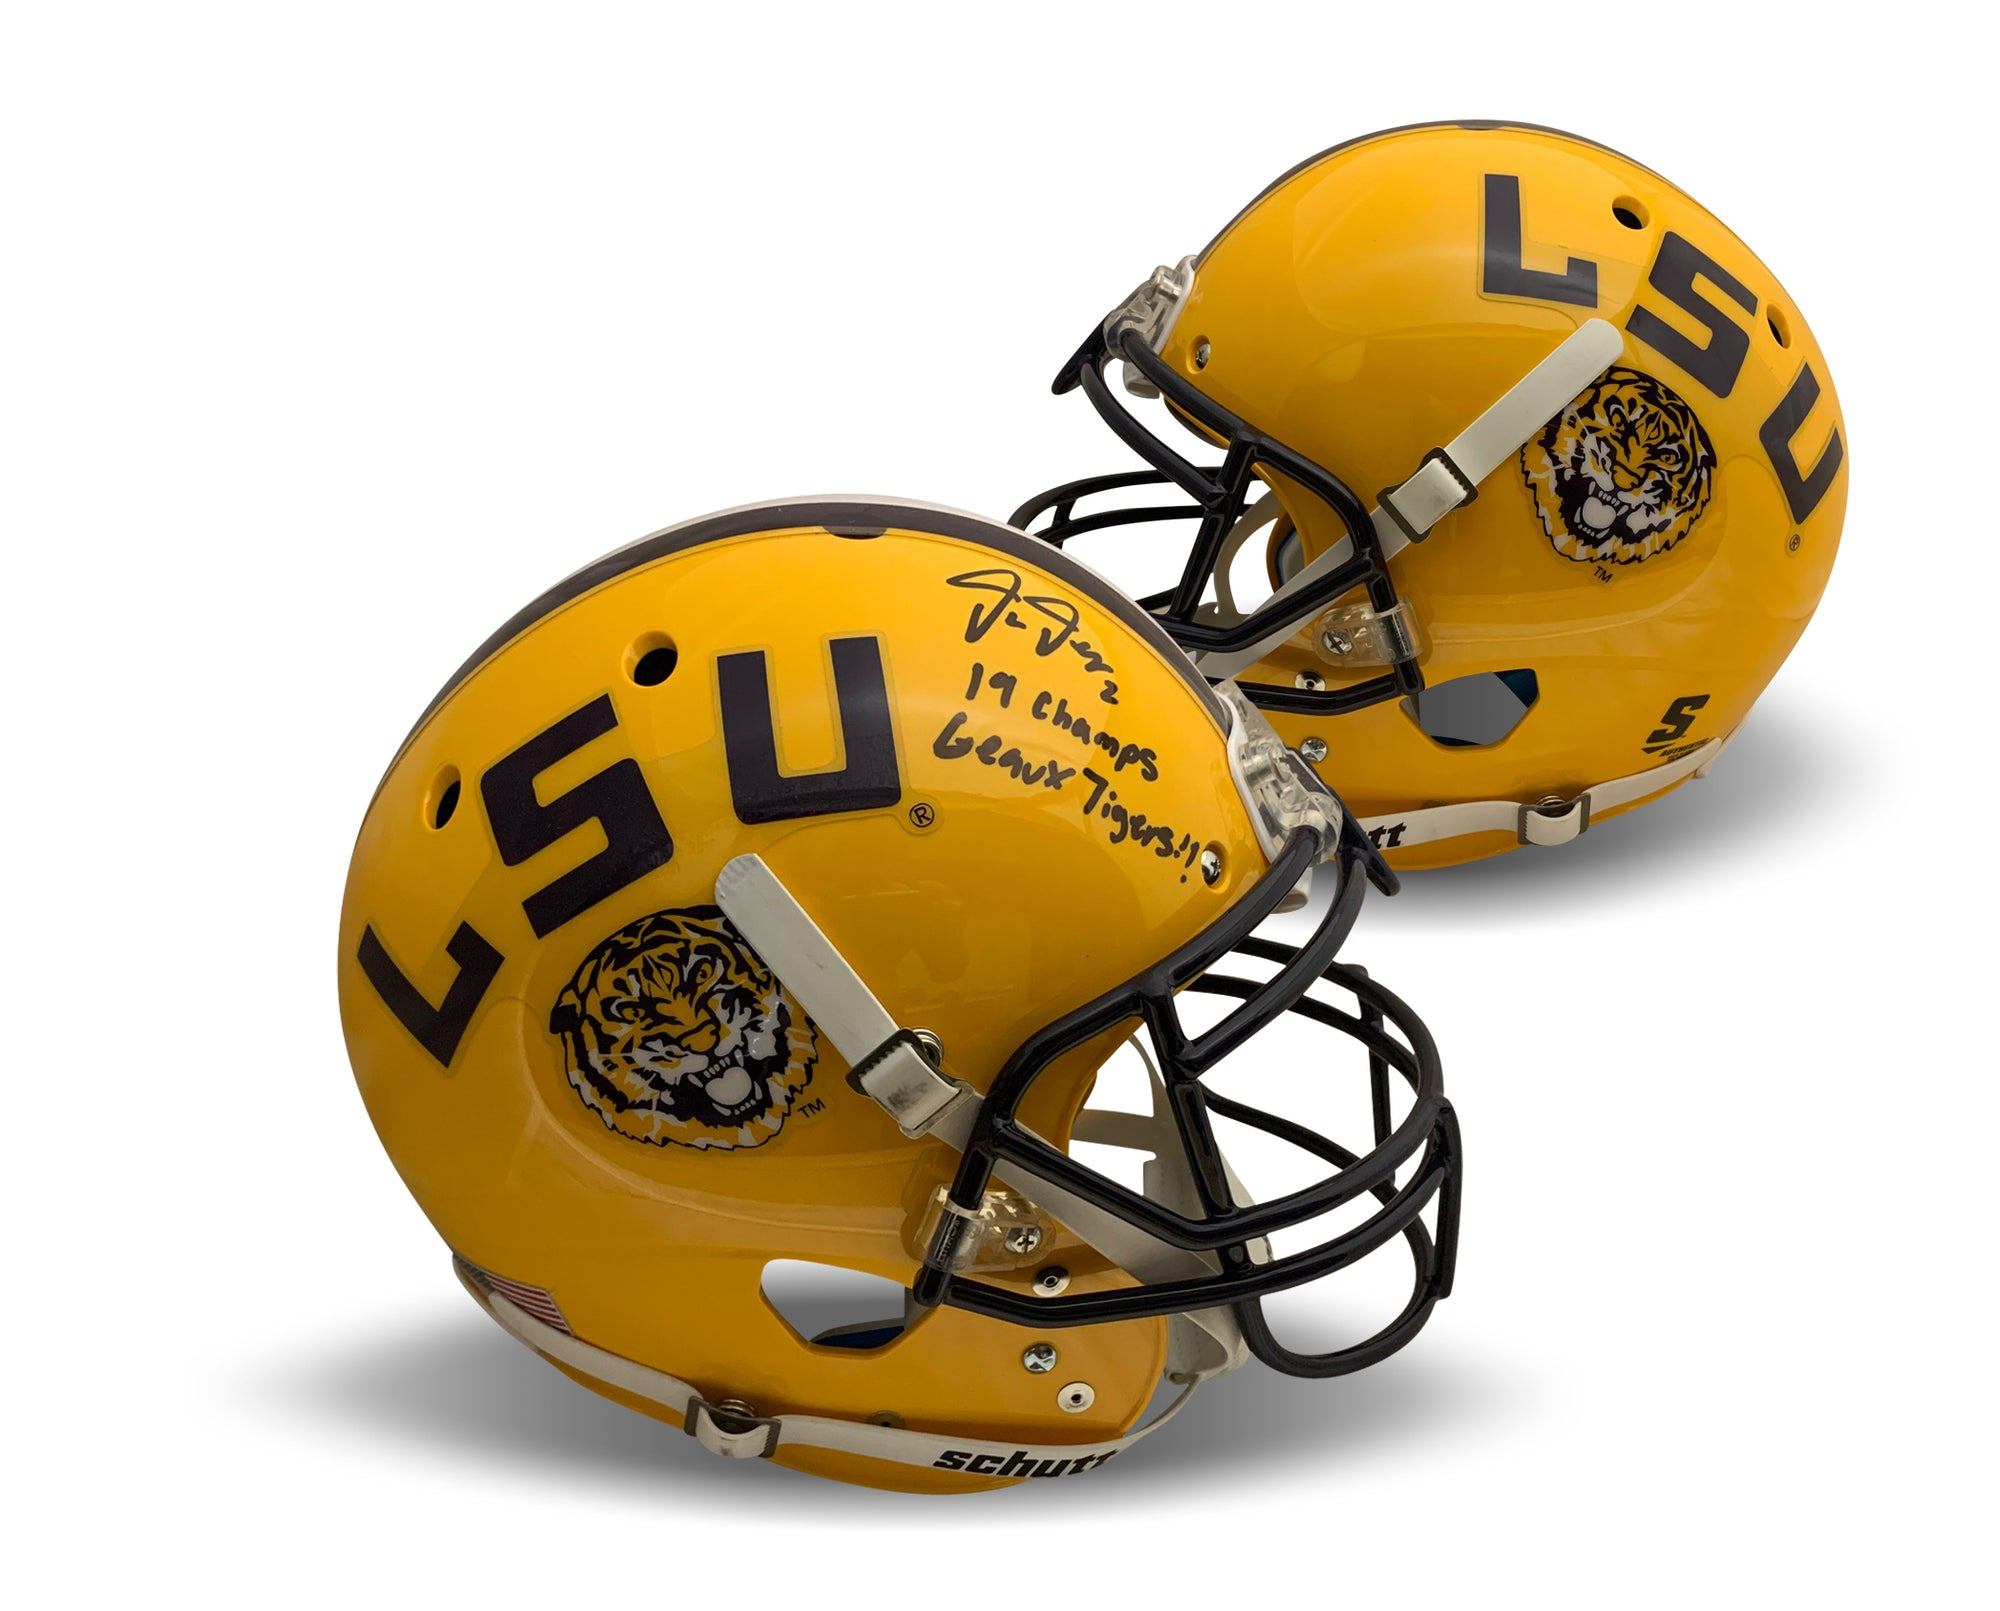 Justin Jefferson Autographed LSU Tigers Signed Authentic Full Size Football Helmet GEUAX 2019 CHAMPS Beckett BAS COA-Powers Sports Memorabilia